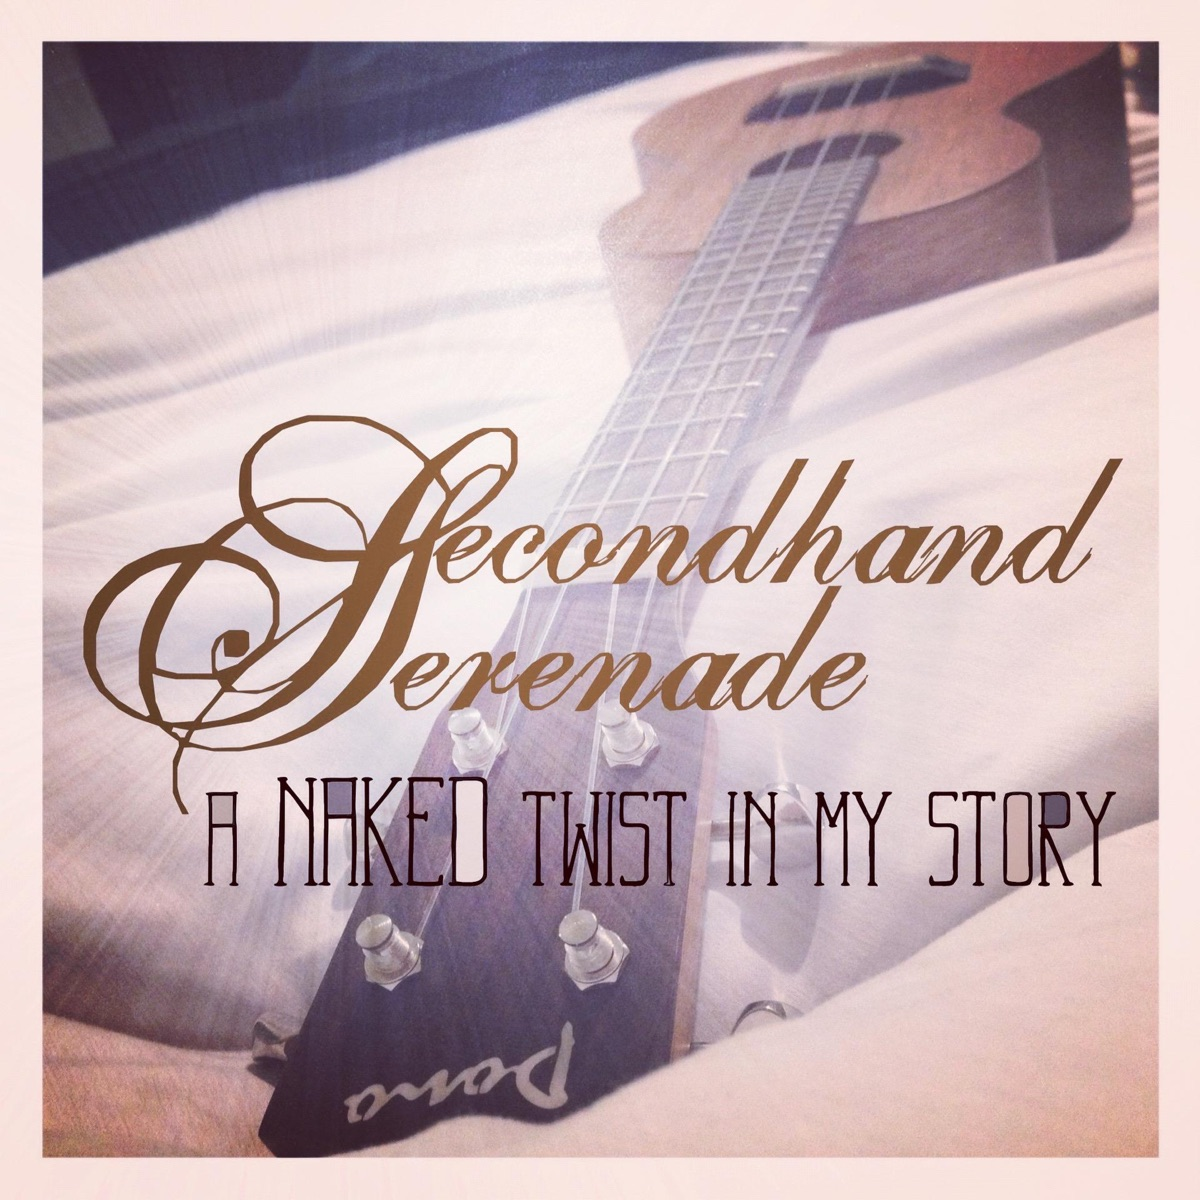 A Naked Twist in My Story Album Cover by Secondhand Serenade